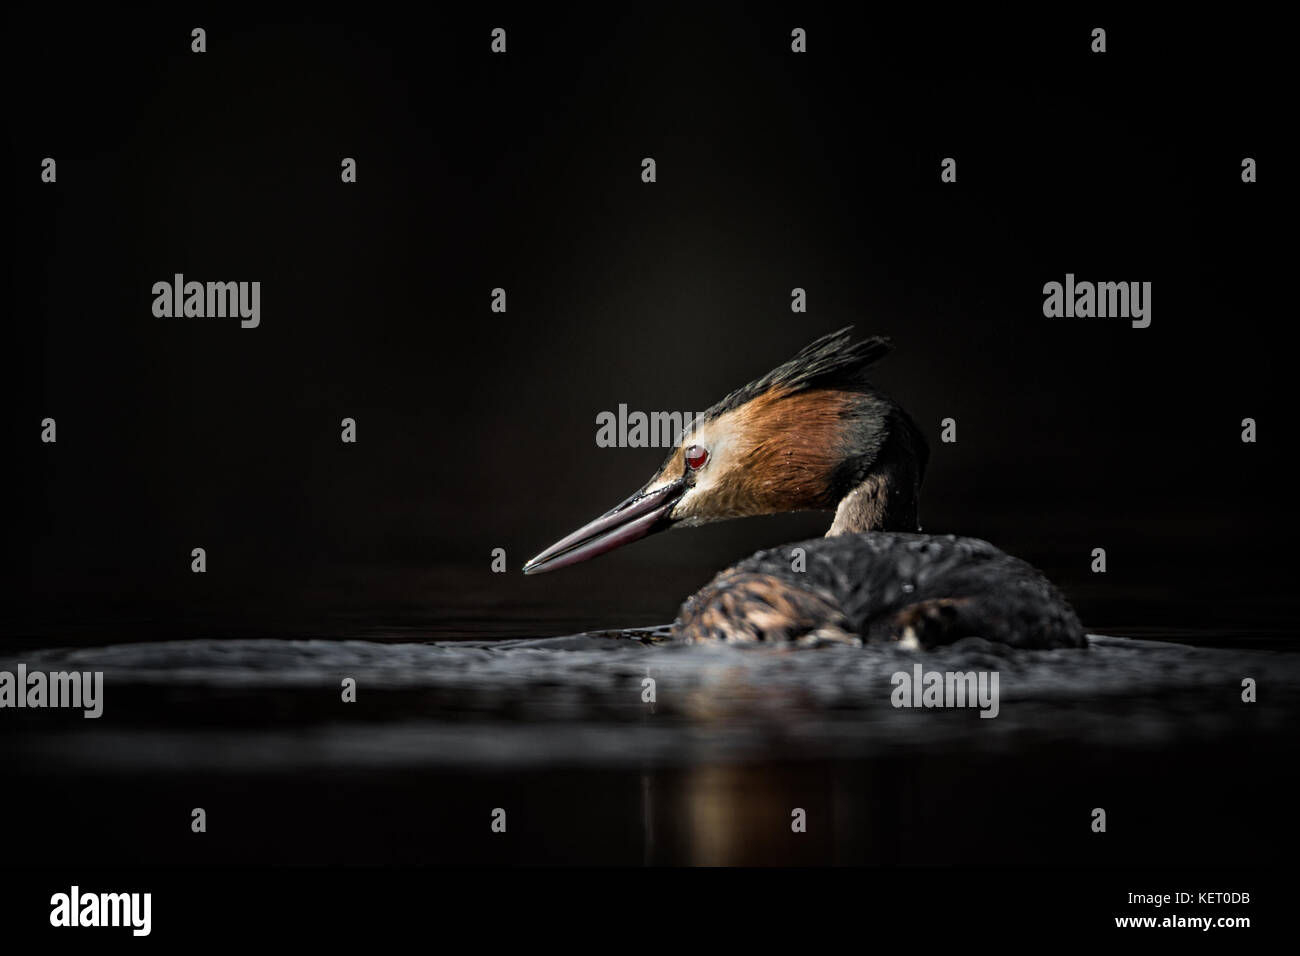 Great Crested Grebe on lake, England, UK - Stock Image